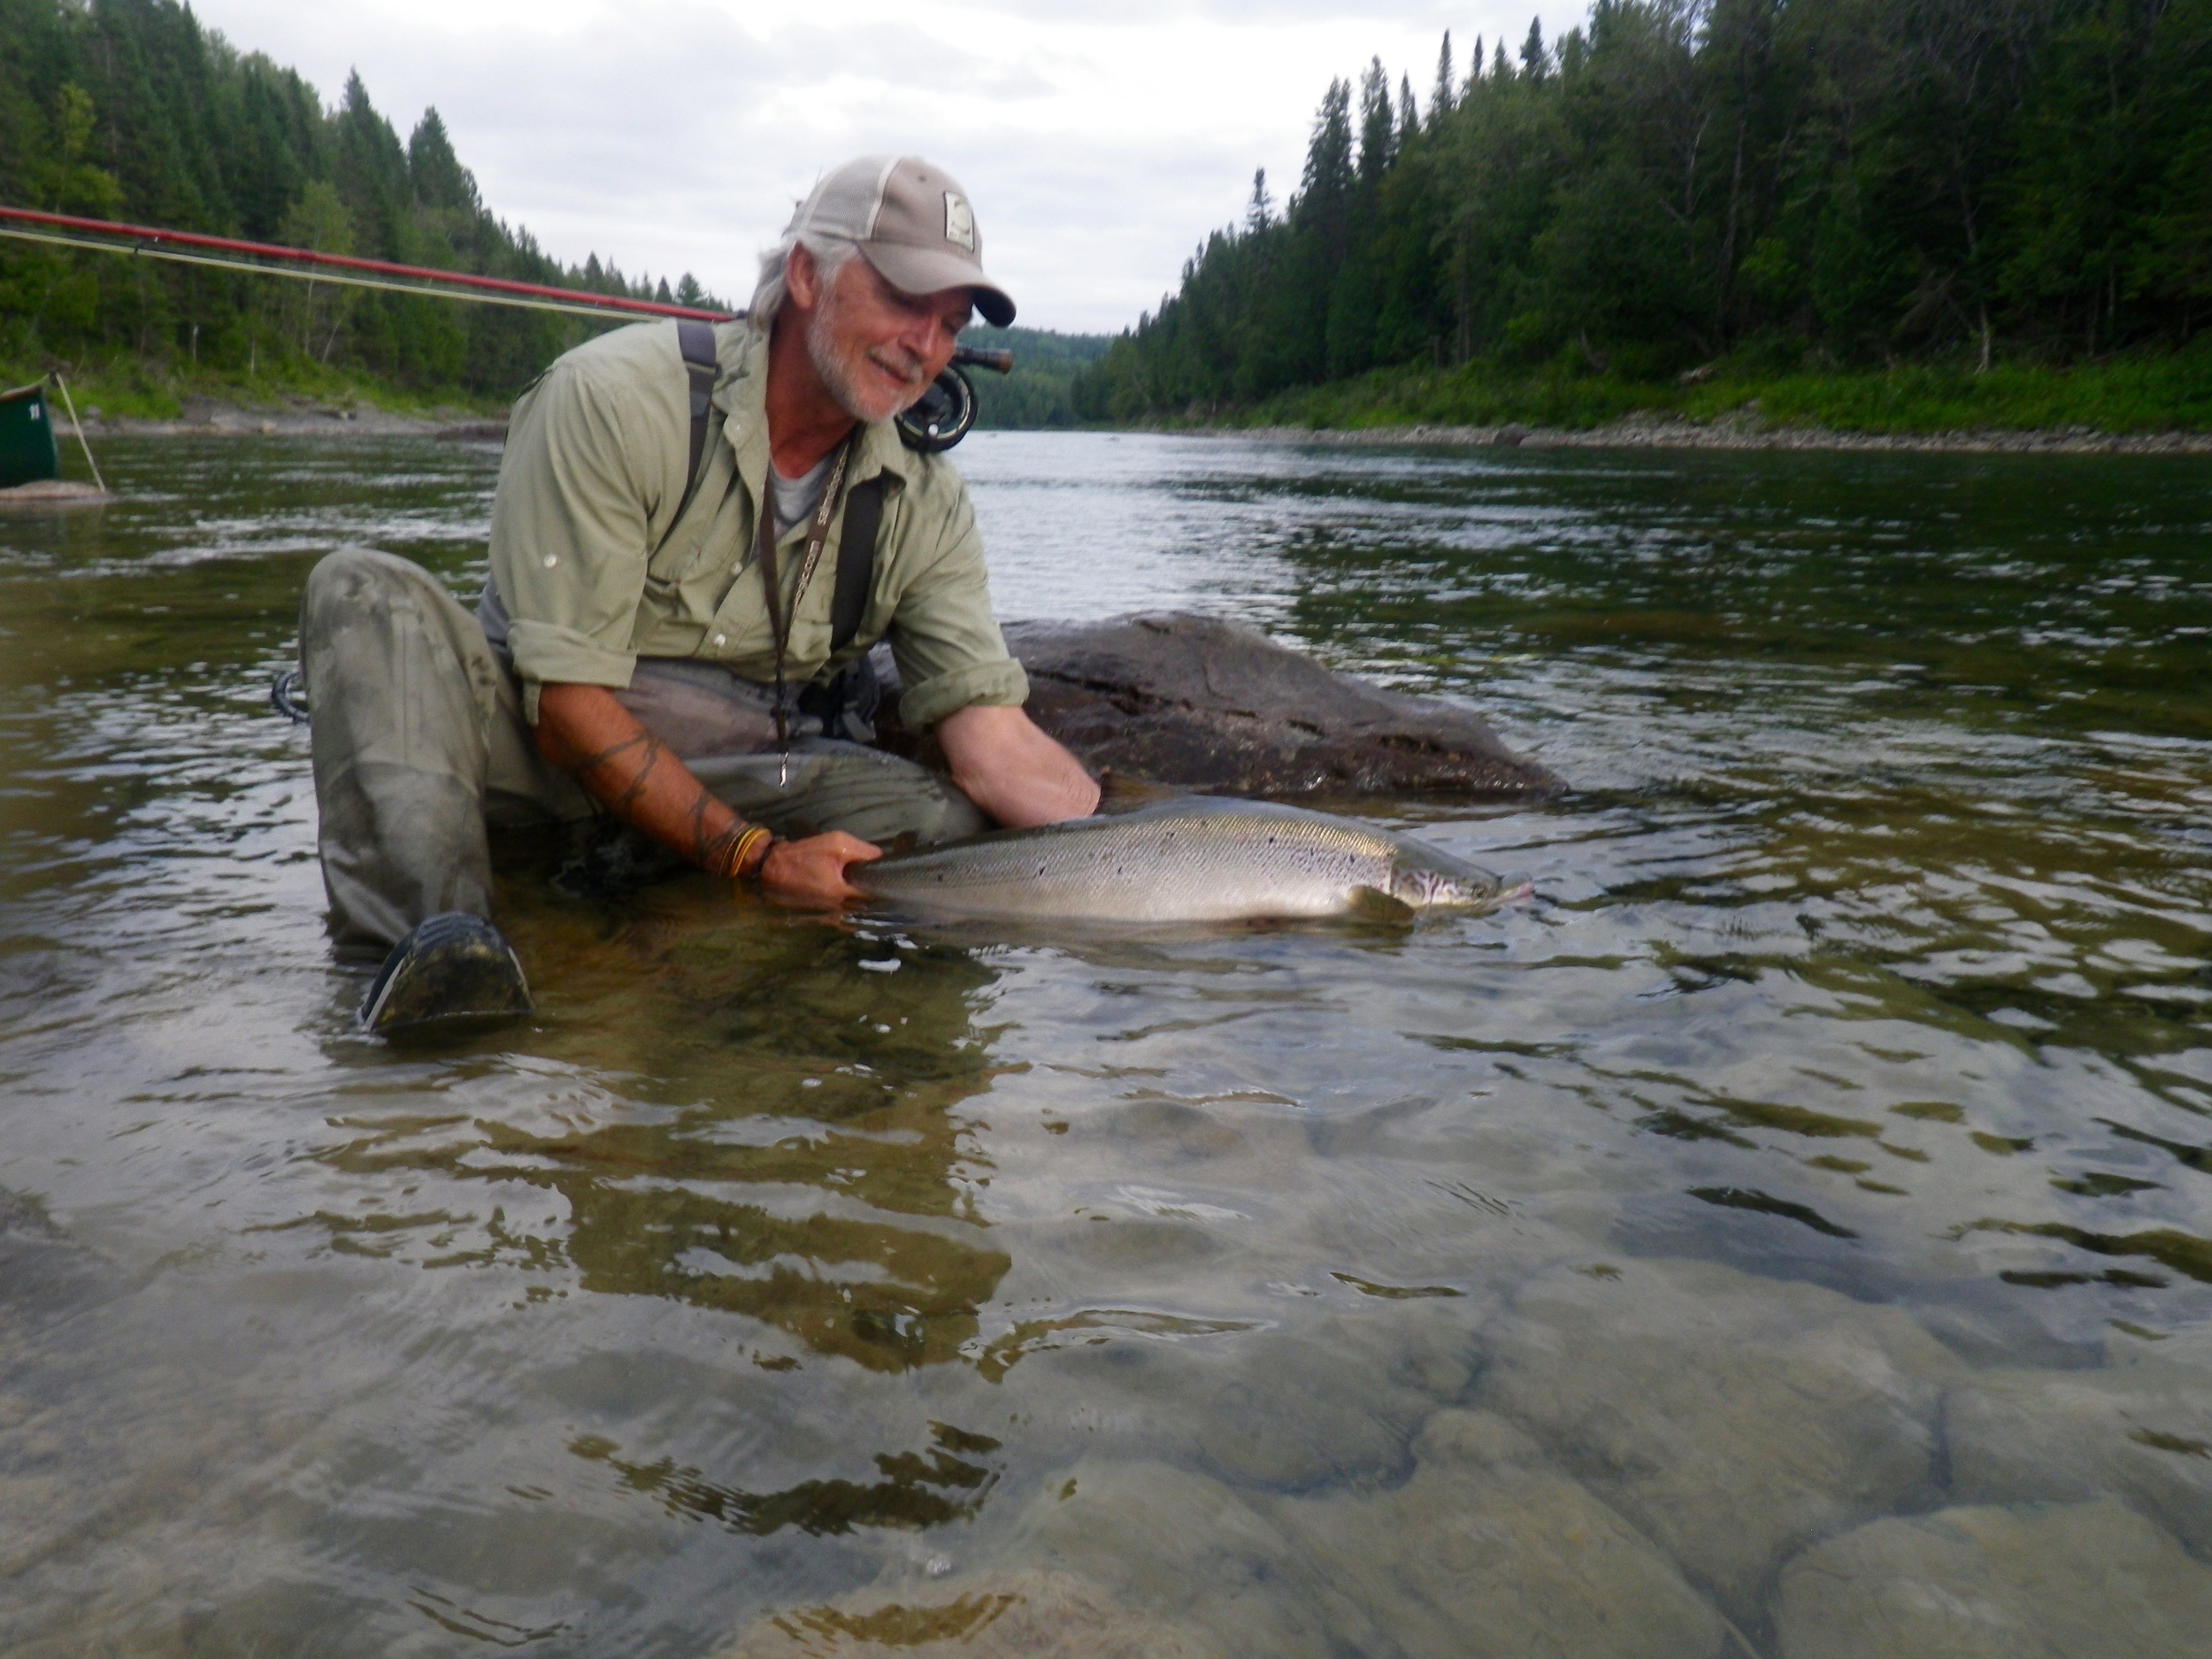 Henrik Mortensen with yet another salmon, he sure know how to catch them, Nice one Henrik.